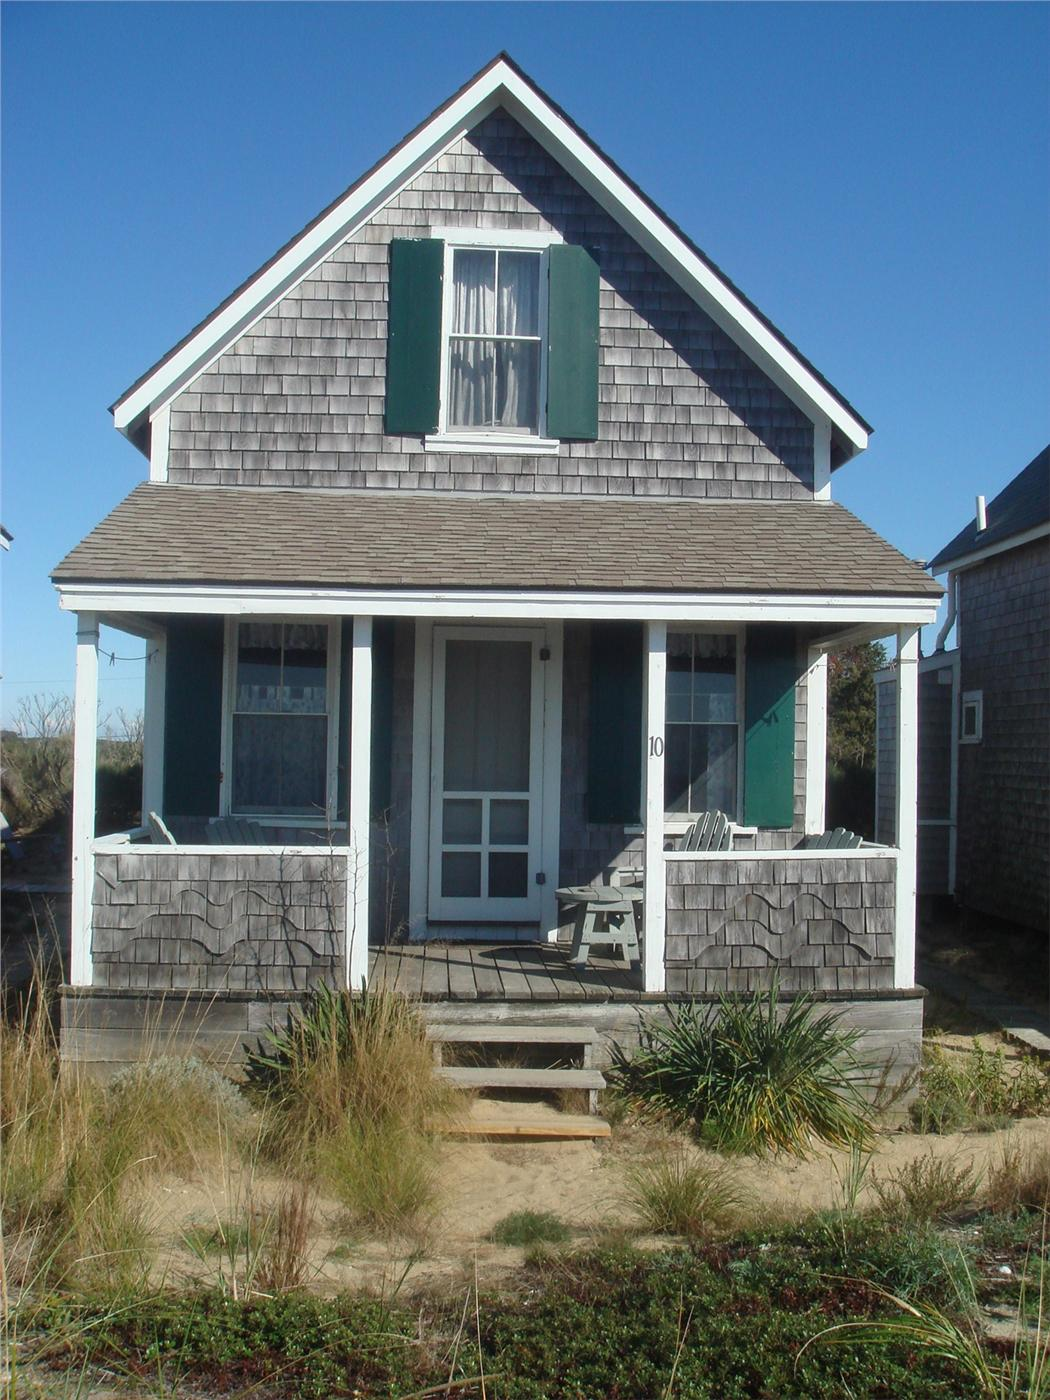 Truro Vacation Rental Home In Cape Cod Ma 02666 A Few